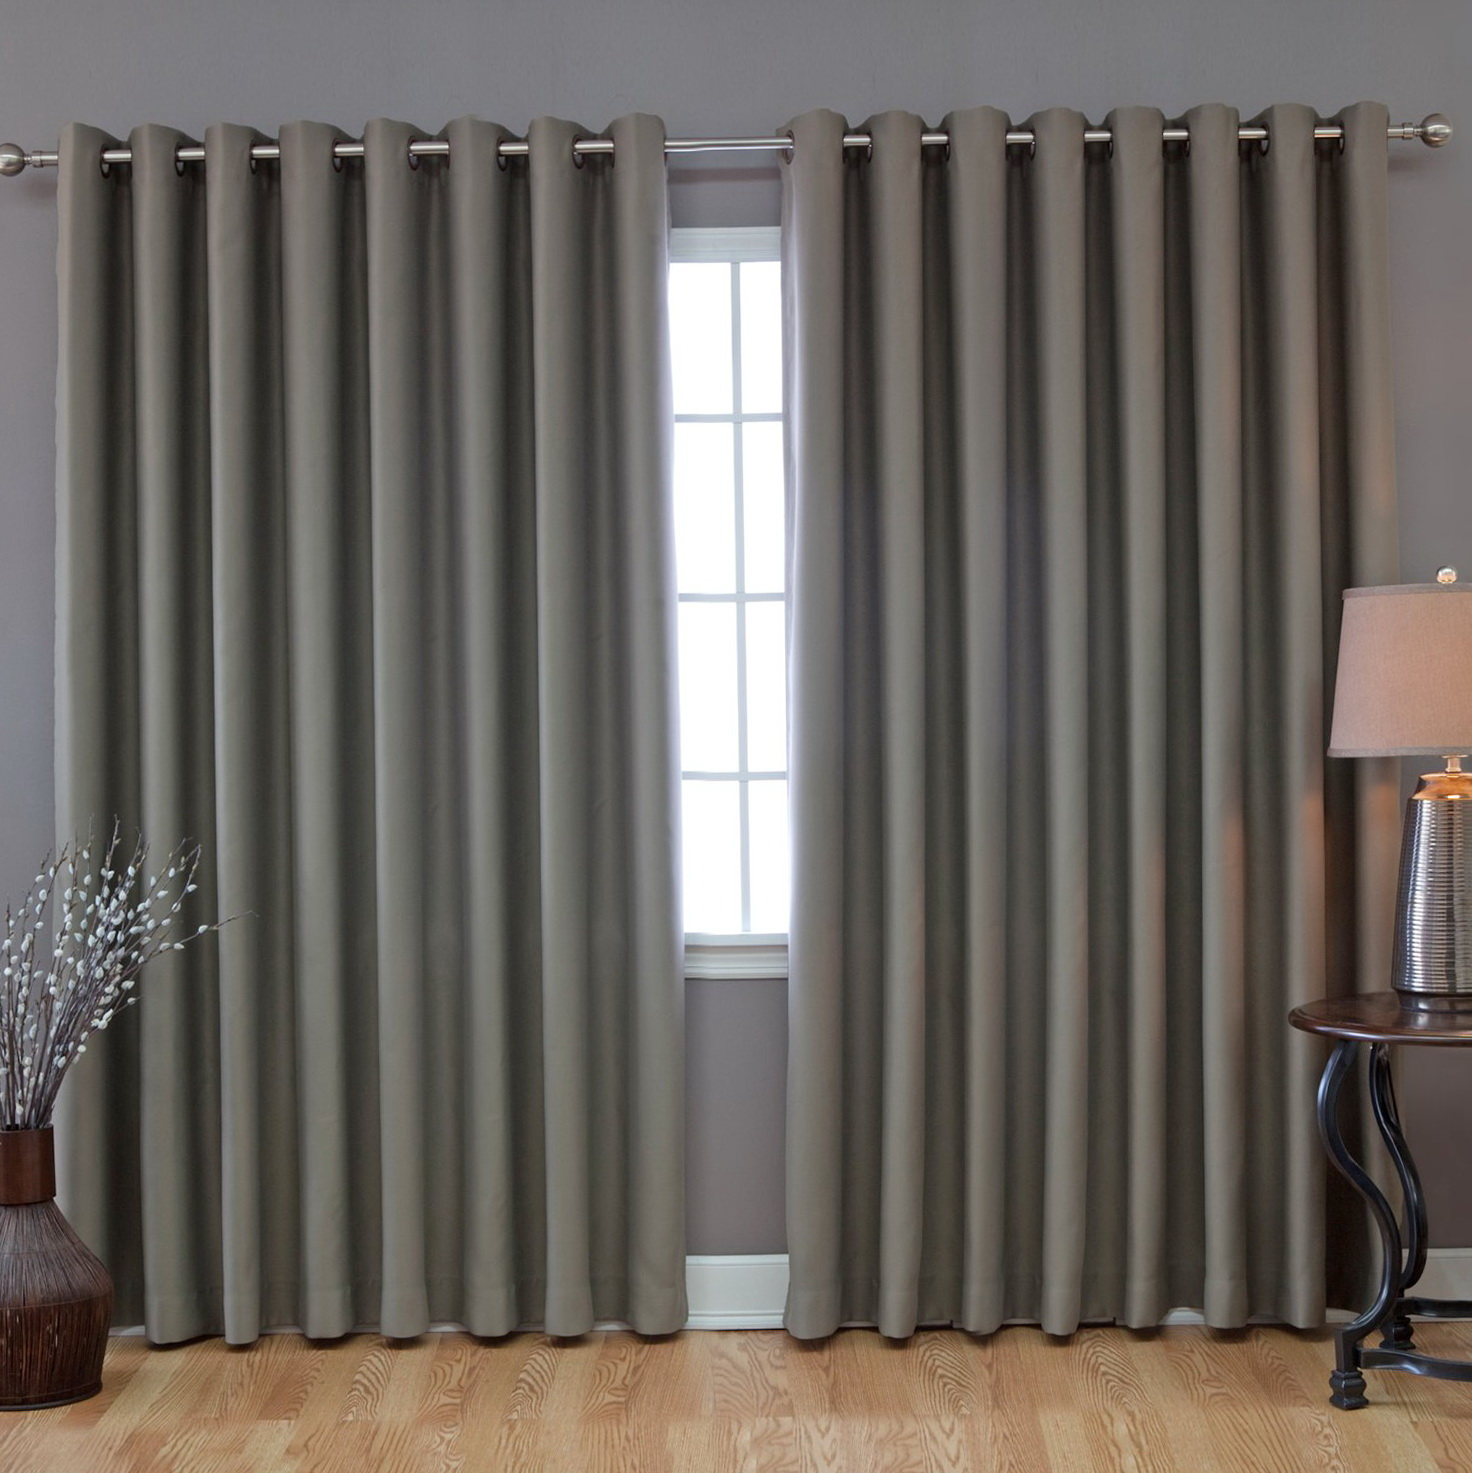 Patio Door Curtains And Blinds Ideas Home Design Ideas